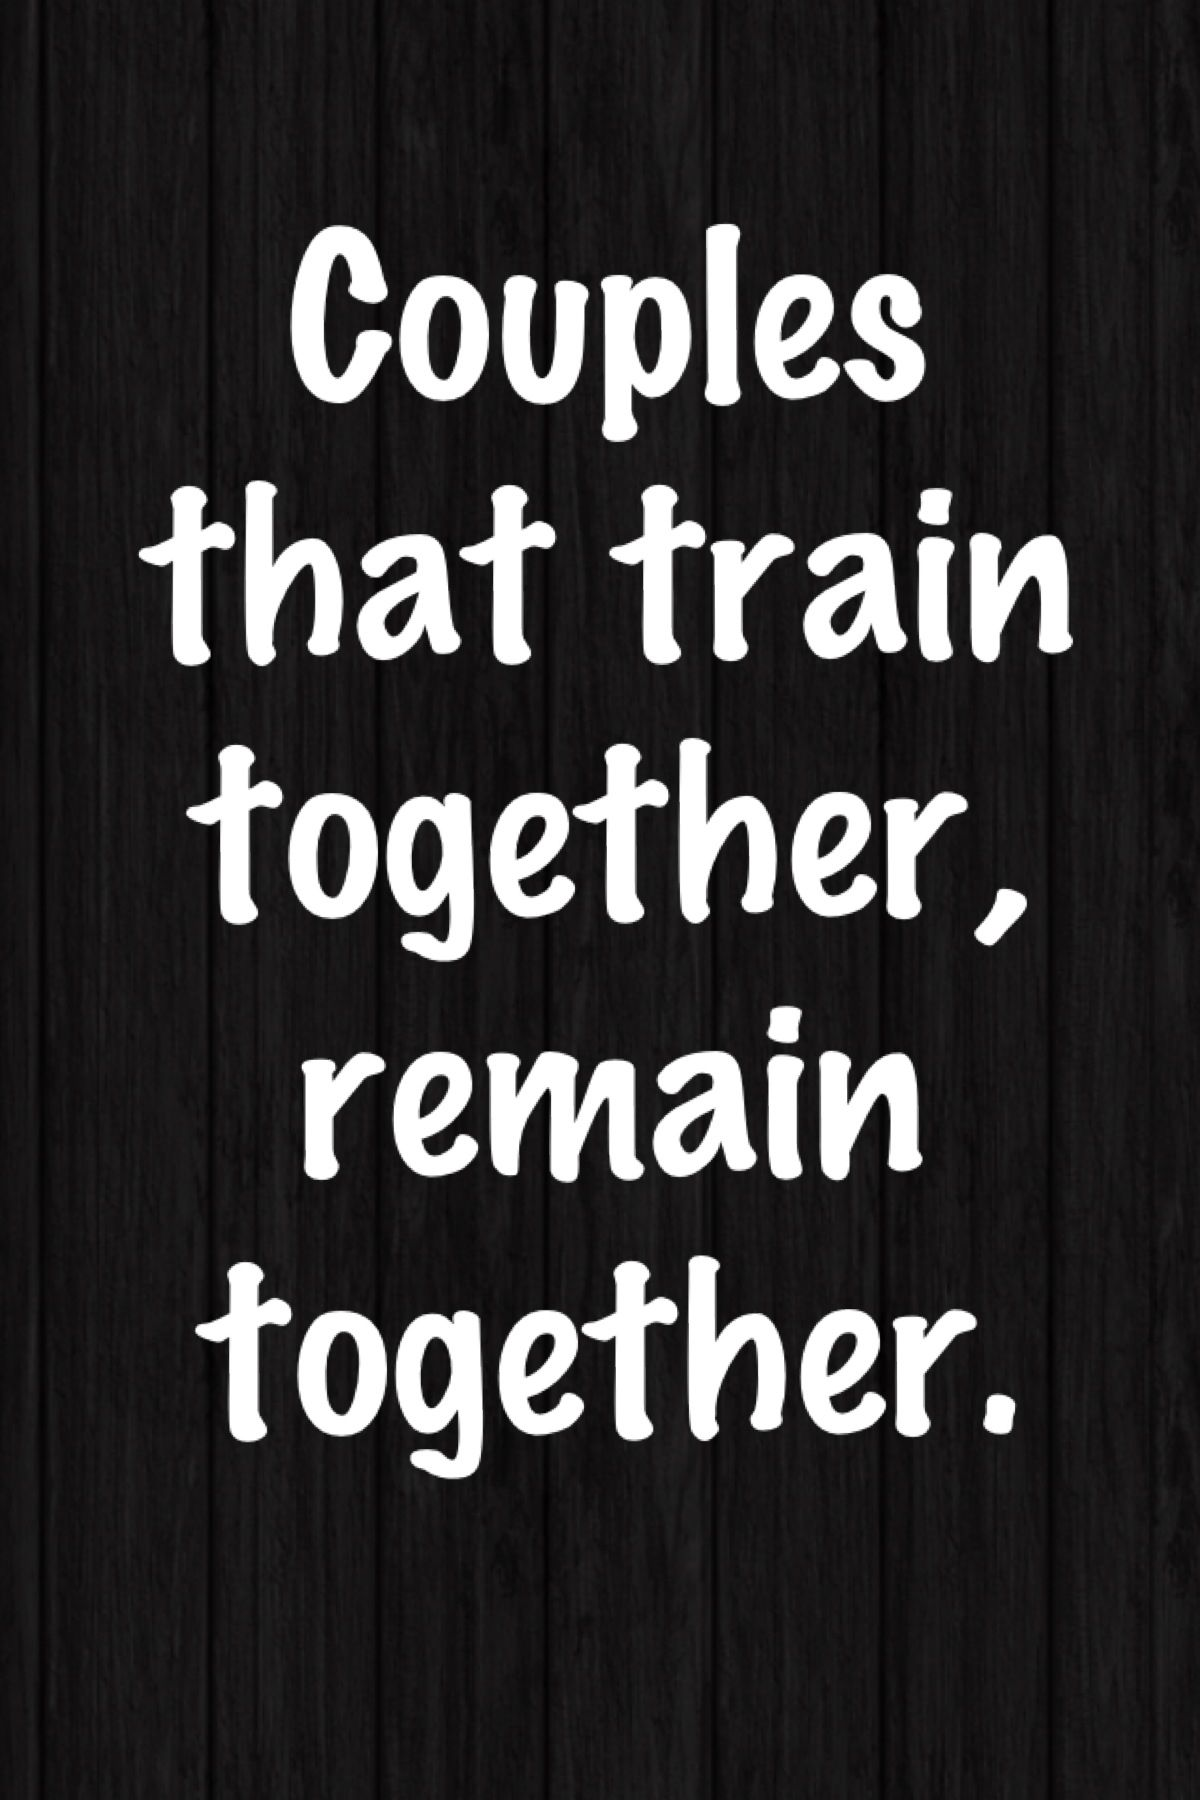 Pin By Taylir Skinn On Quotes Couples Who Workout Together Fit Couples Fitness Goals Quotes